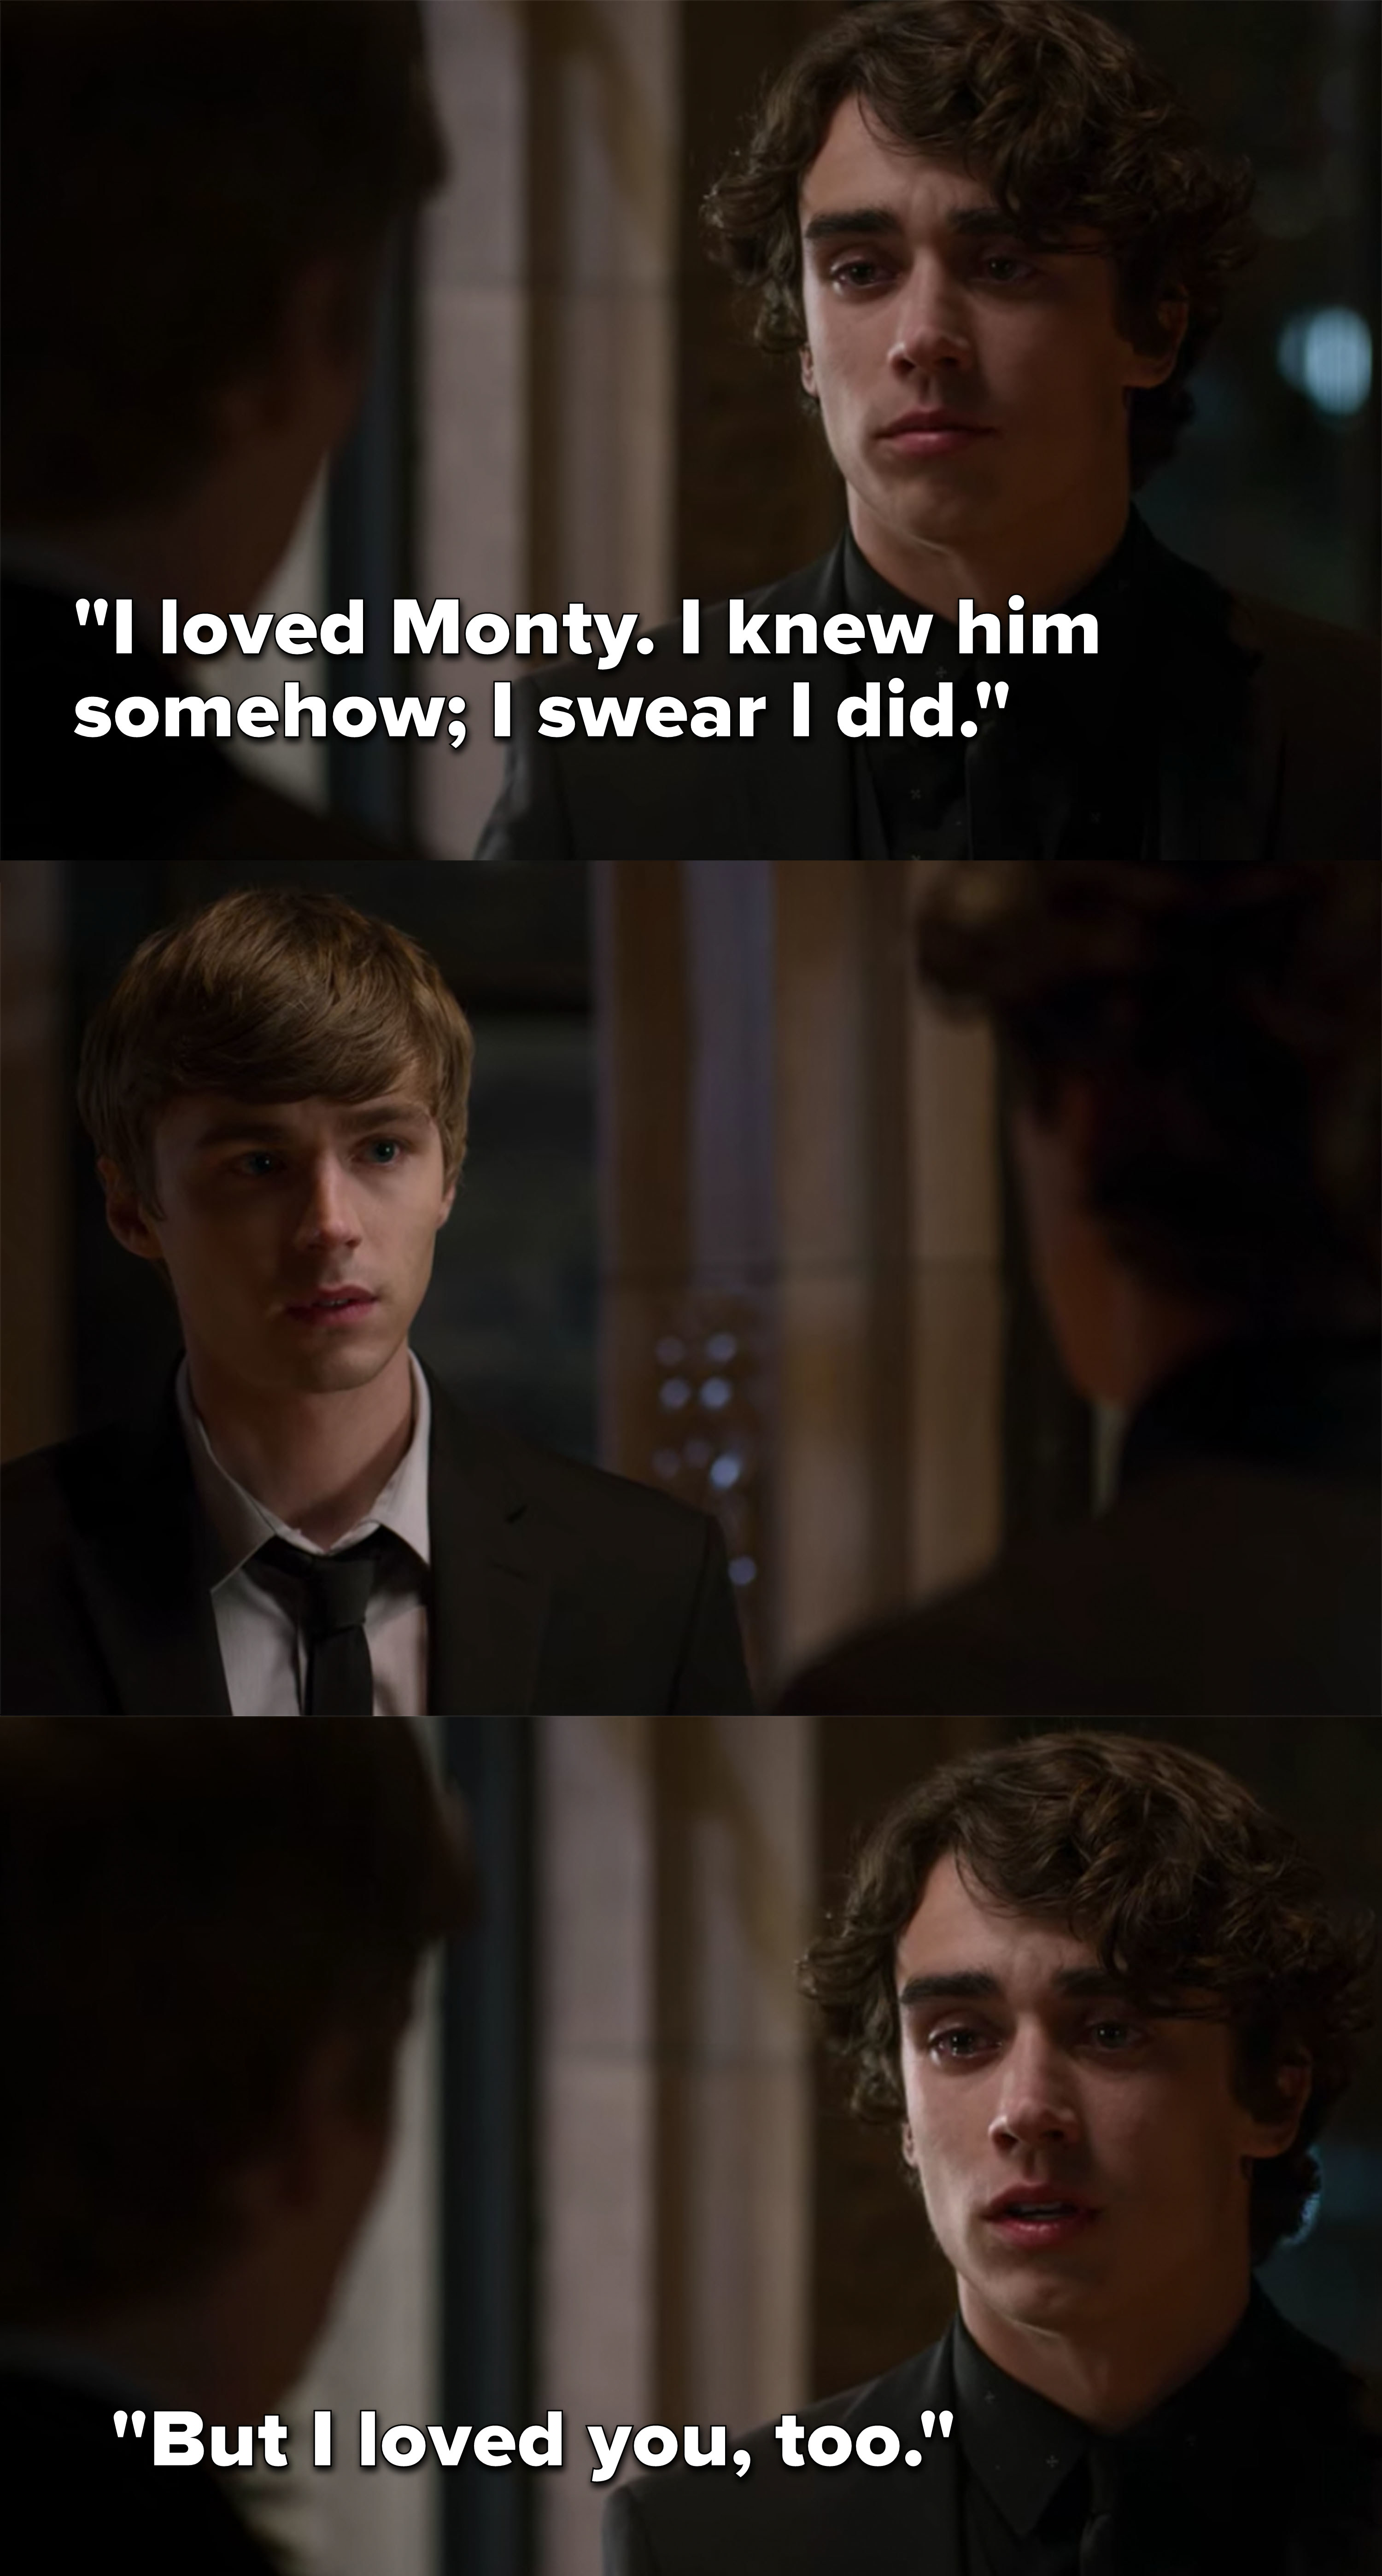 "Winston to Alex: ""I loved Monty, I knew him somehow, I swear I did, but I loved you too"""